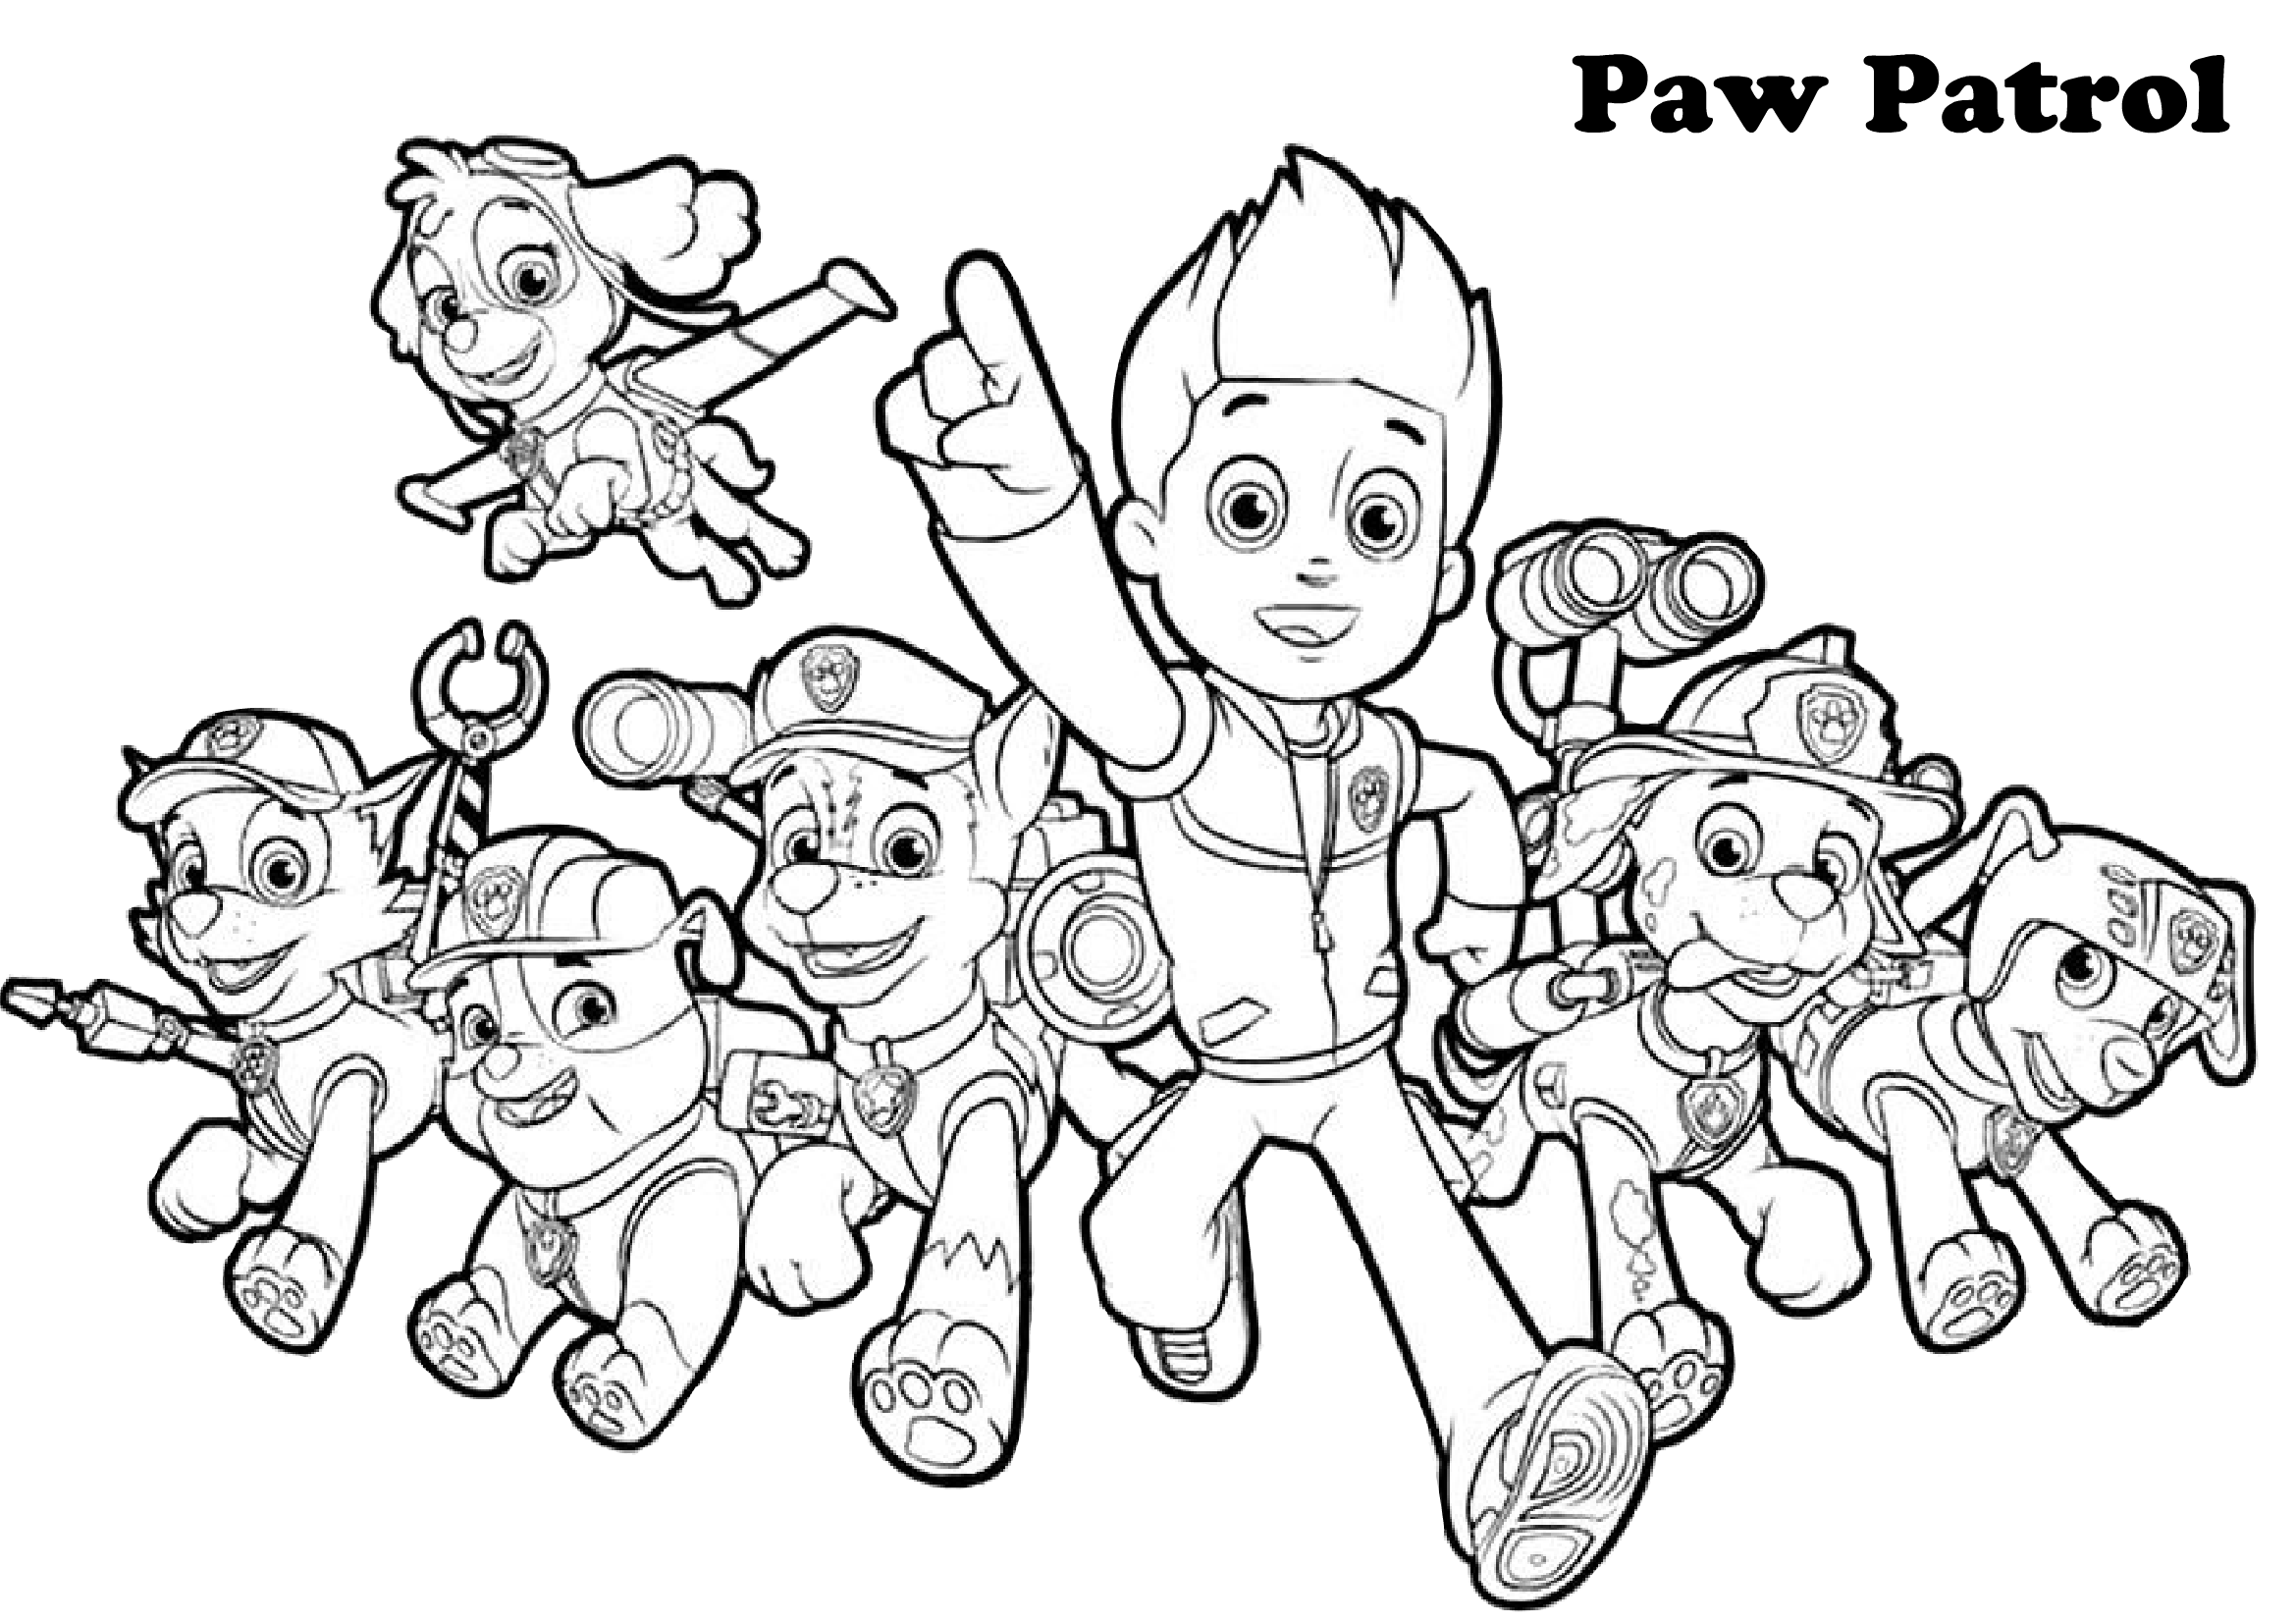 paw patrol characters paw patrol characters coloring pages at getcoloringscom patrol paw characters